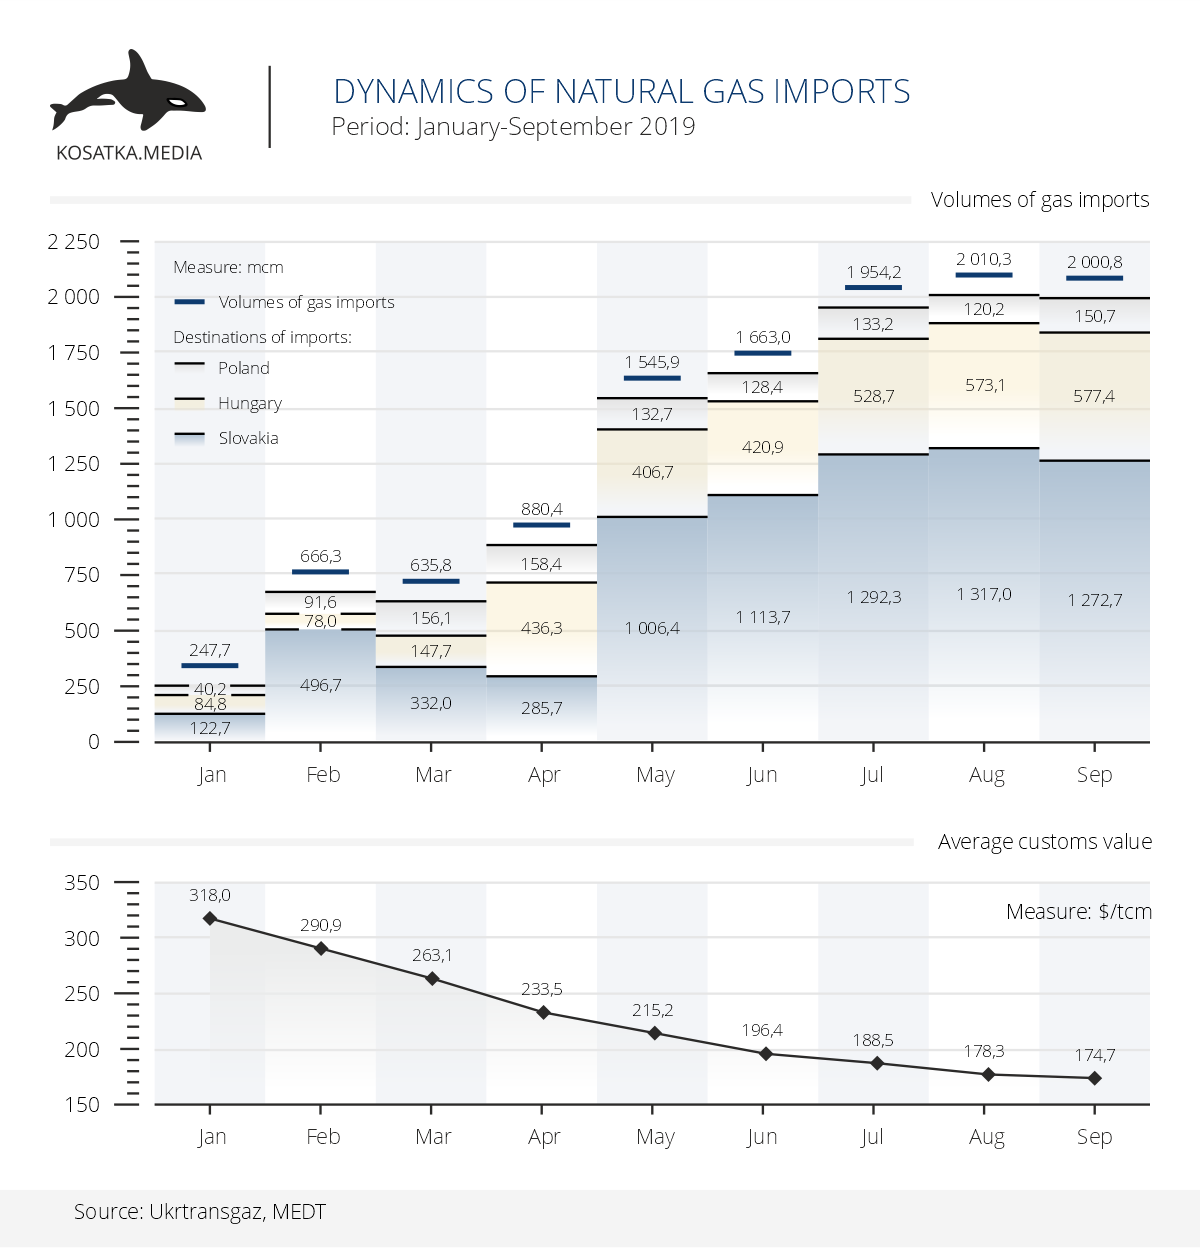 Dynamics of gas imports (January-September 2019)